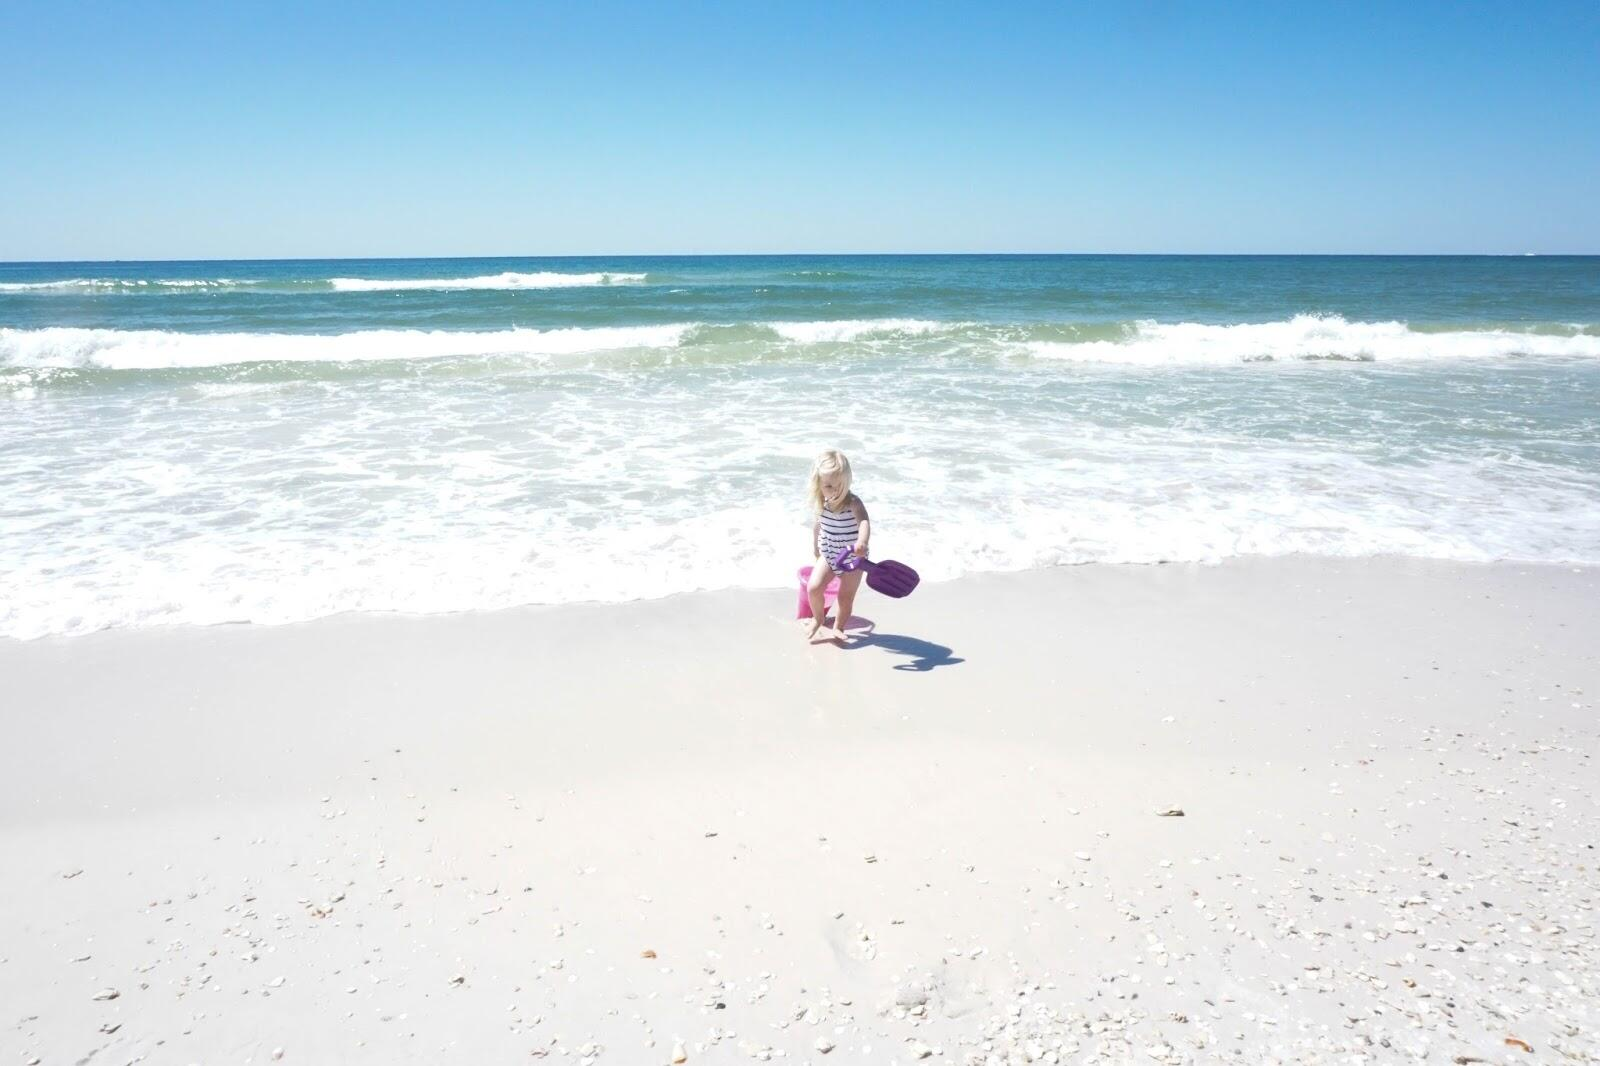 Our Pensacola Vacation As a Family by lifestyle blogger Laura of Walking in Memphis in High Heels